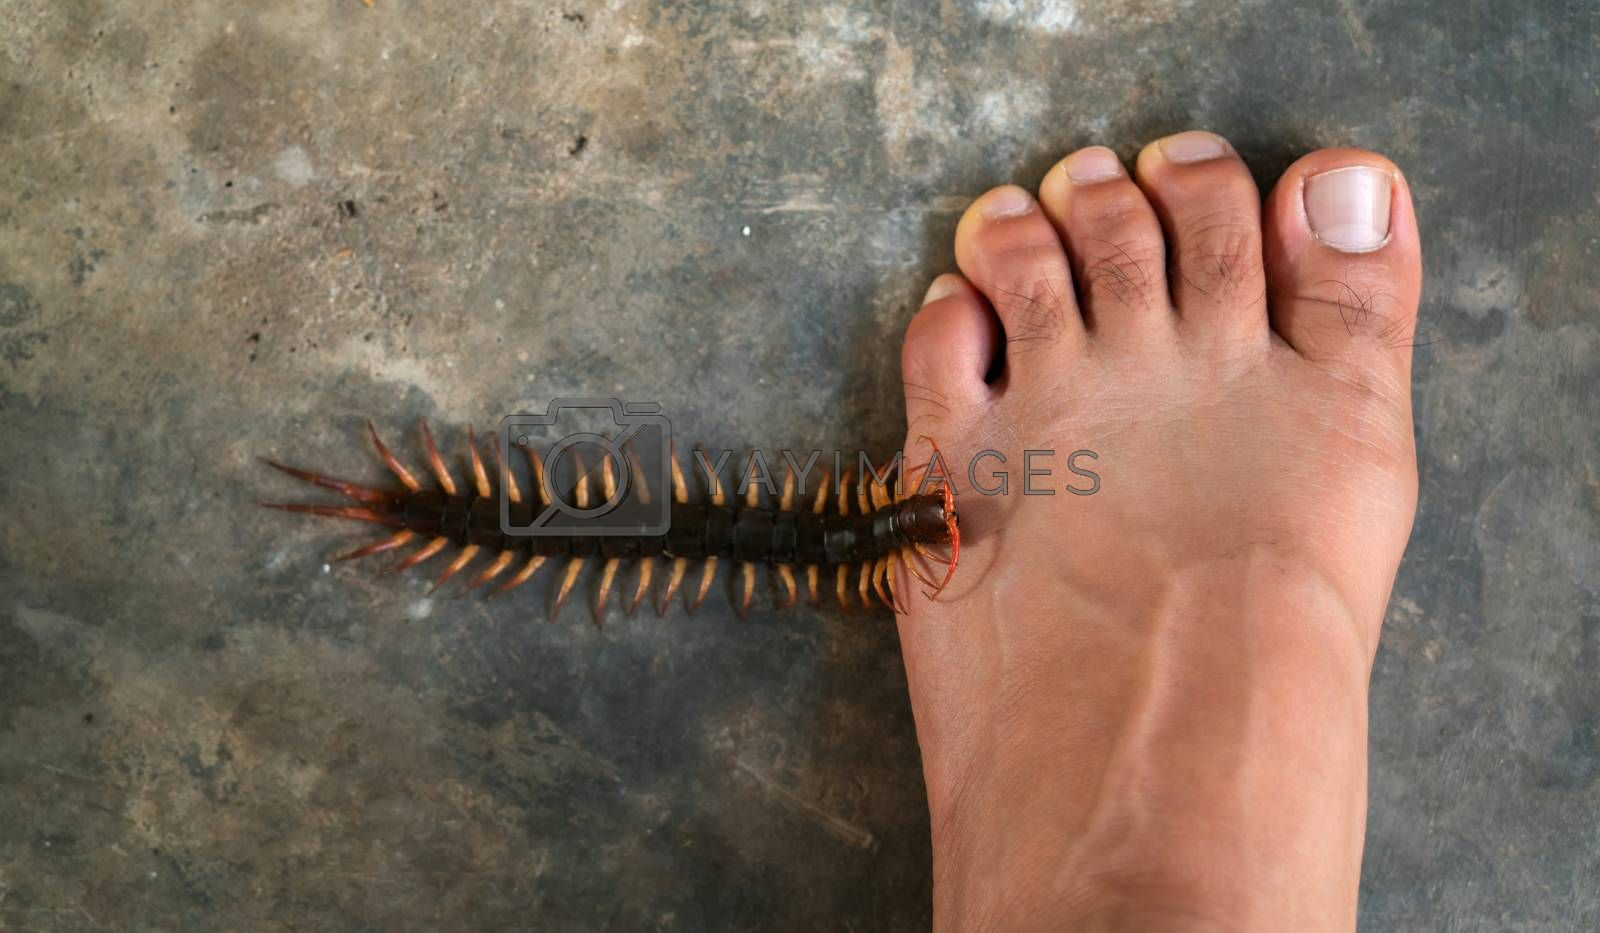 People were bitten by a centipede on their feet  by anankkml